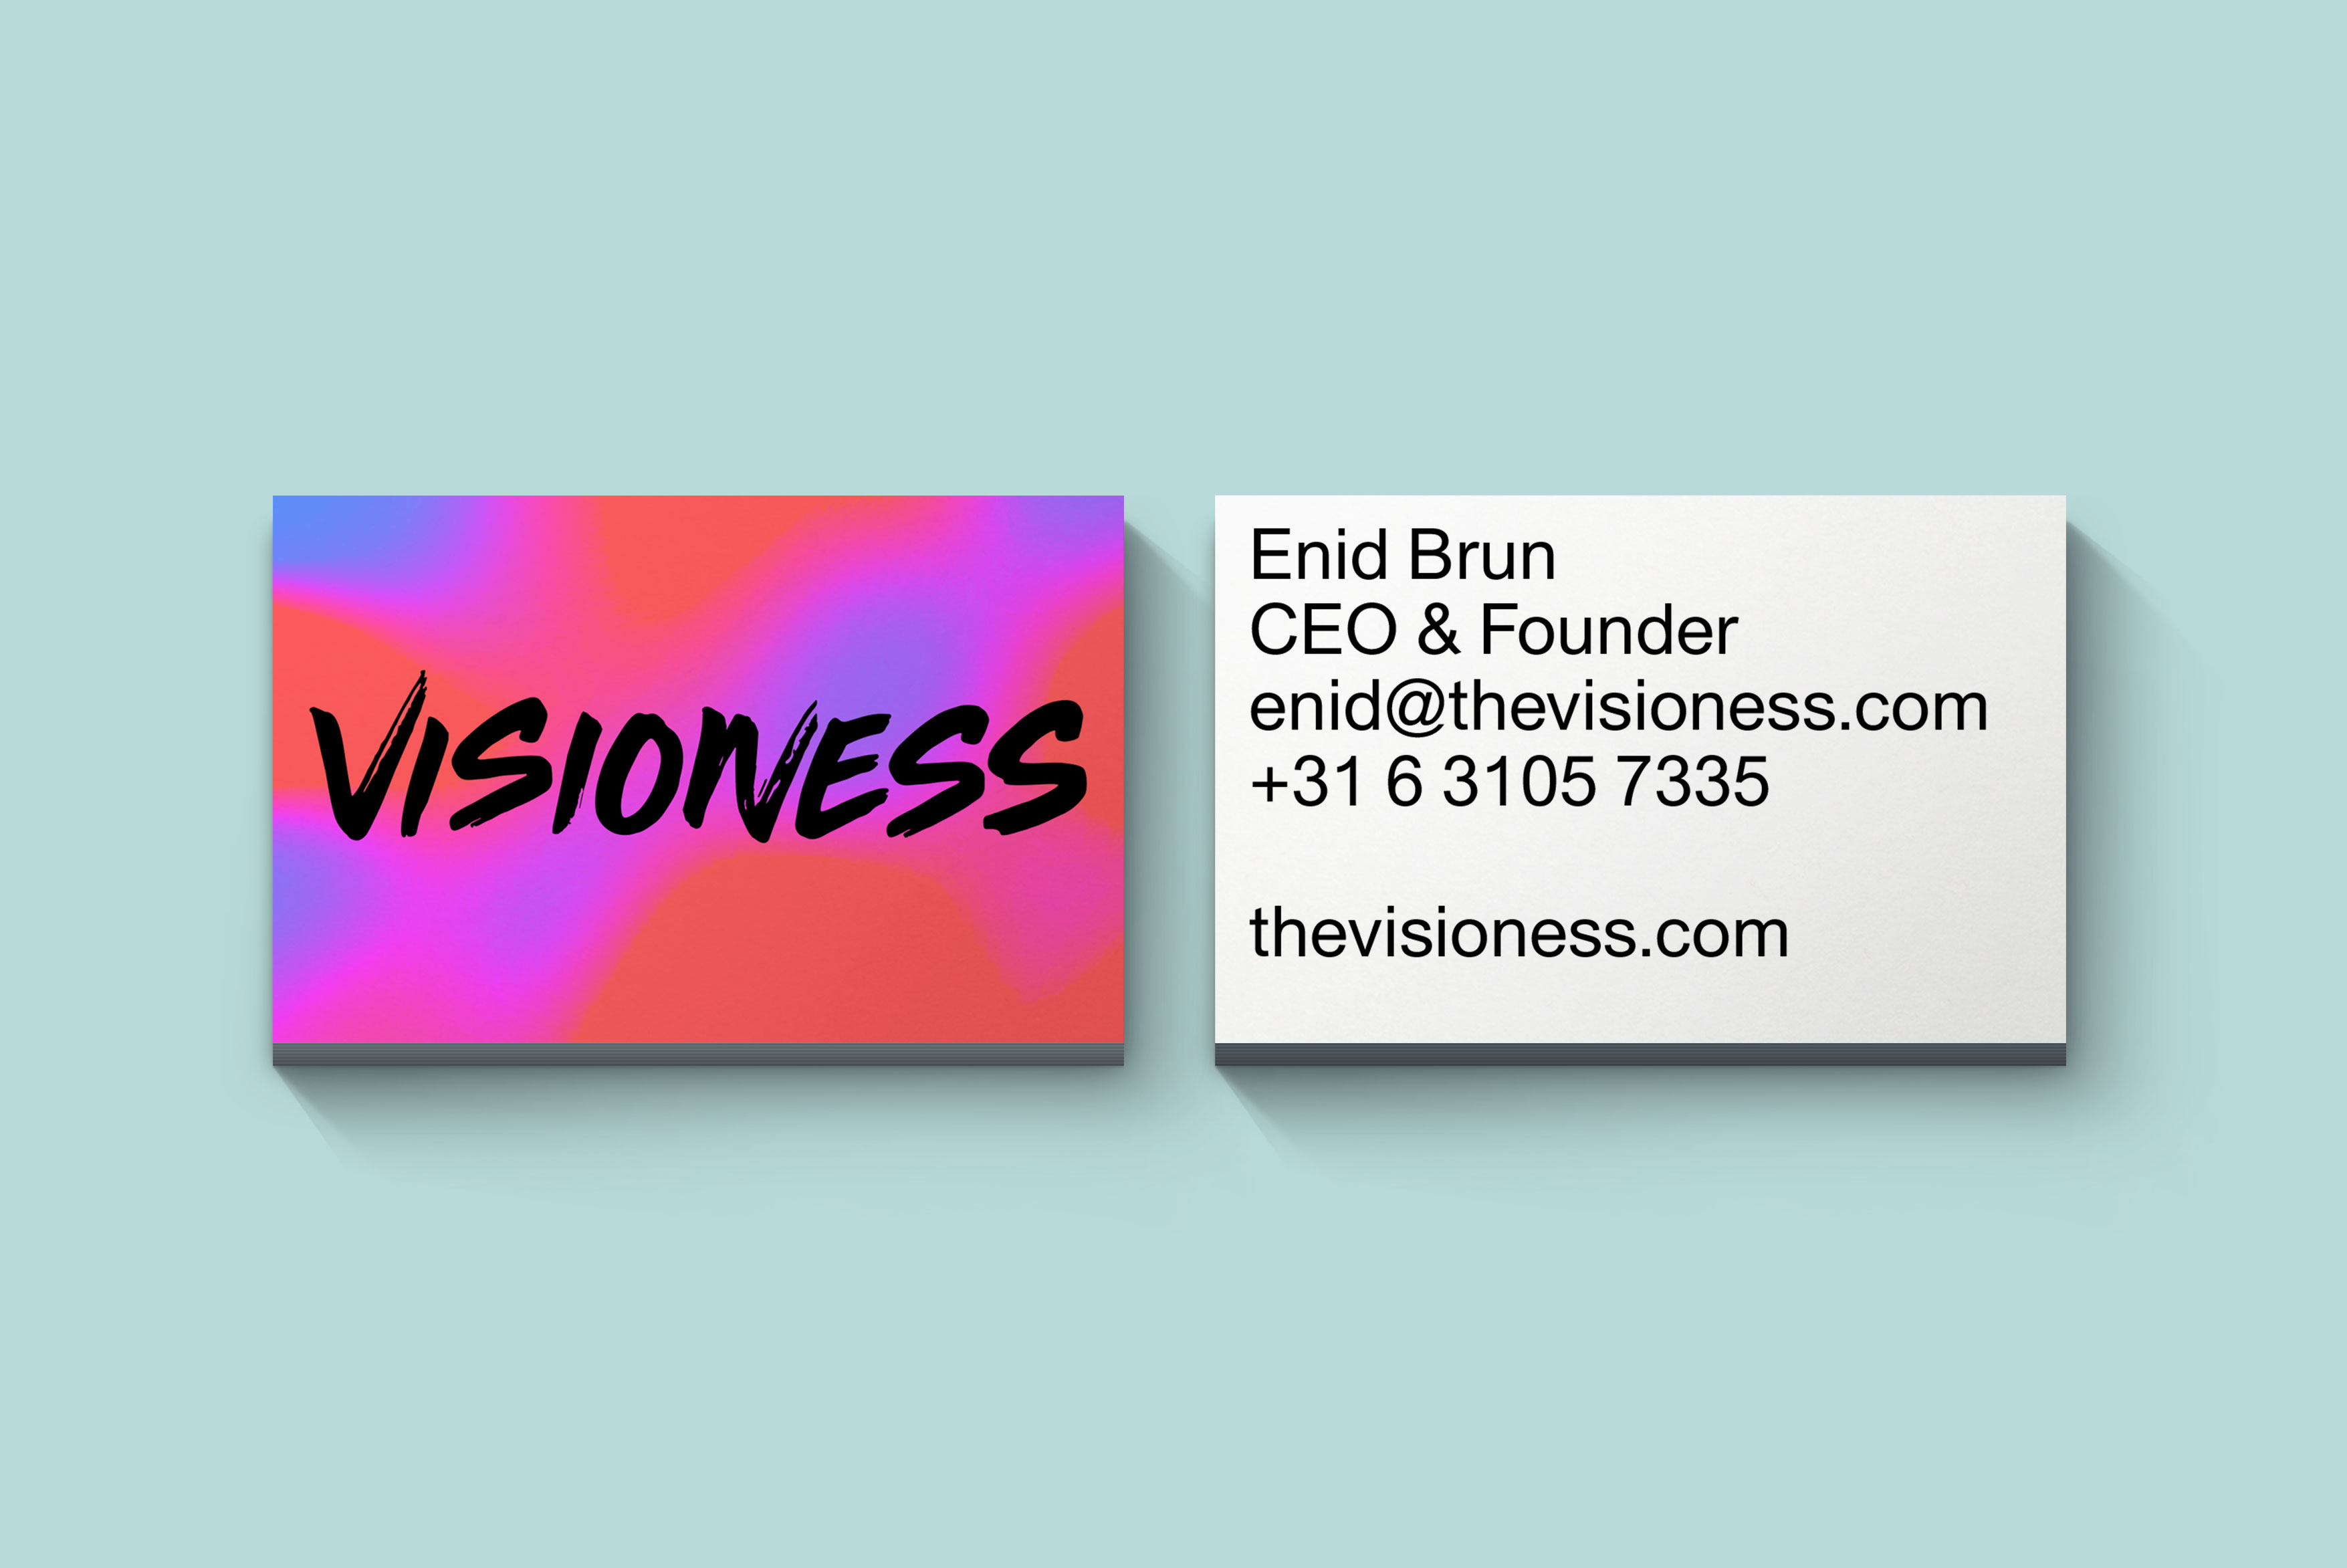 Visioness_bcards